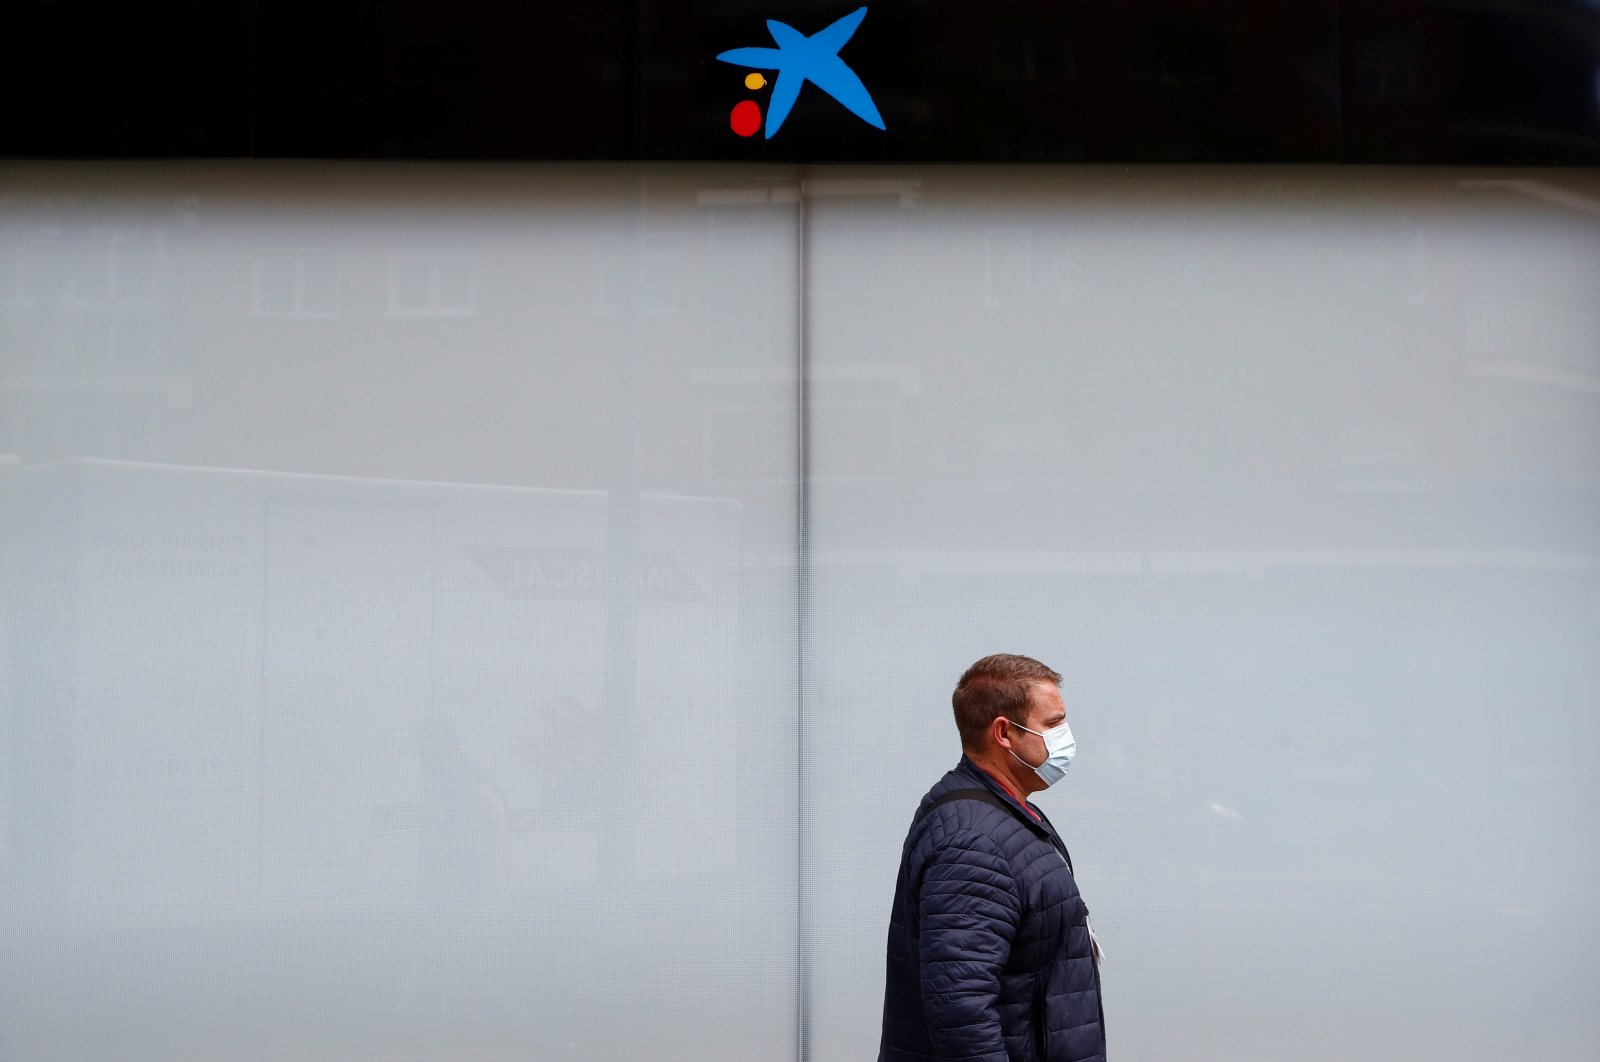 A person walks past a Caixabank's bank branch in Madrid, Spain, April 20, 2021. (Reuters Photo)